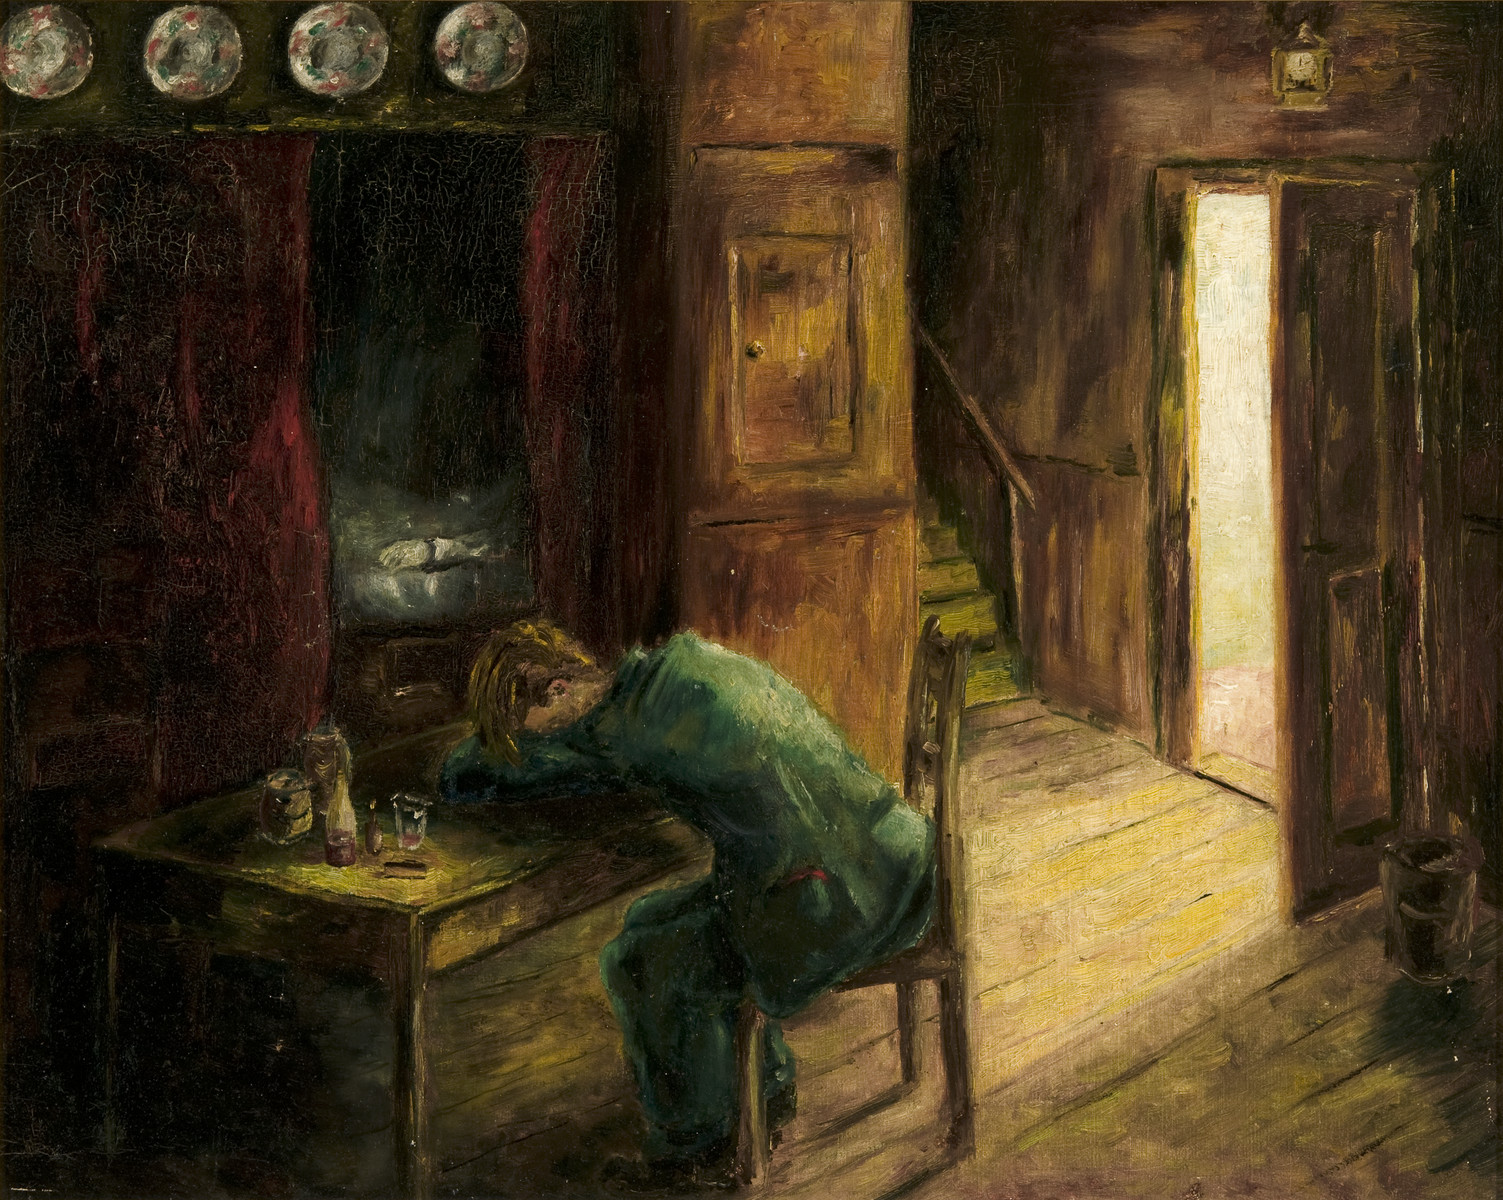 Self-portrait showing himself in dispair sitting with his head on his arms in an imaginary room painted by Heinz Geiringer, a Jewish teenager in Amsterdam, while in hiding to keep himself occupied.  The paintings were hidden under the floorboards of the hiding place and retrieved after the war.